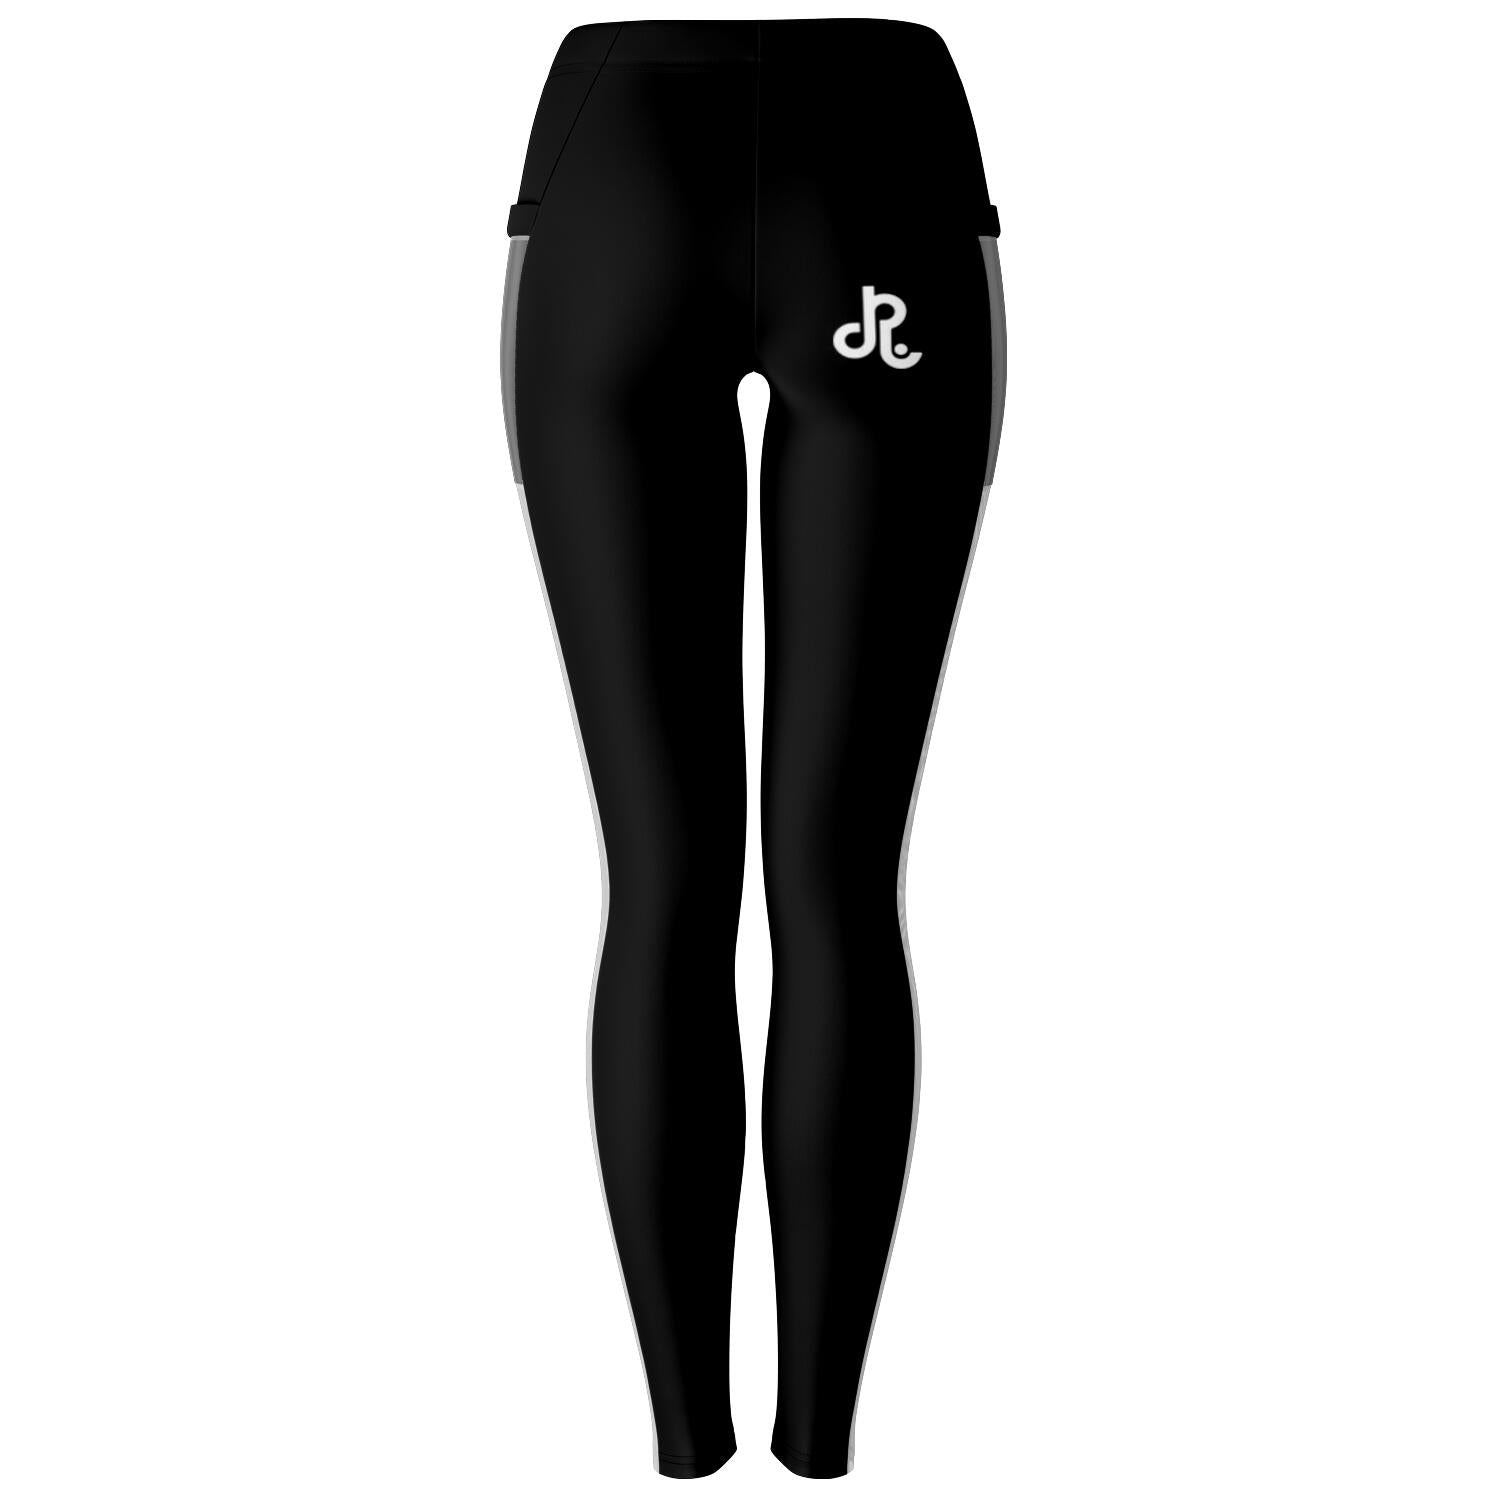 DDIIRO Sports Leggings